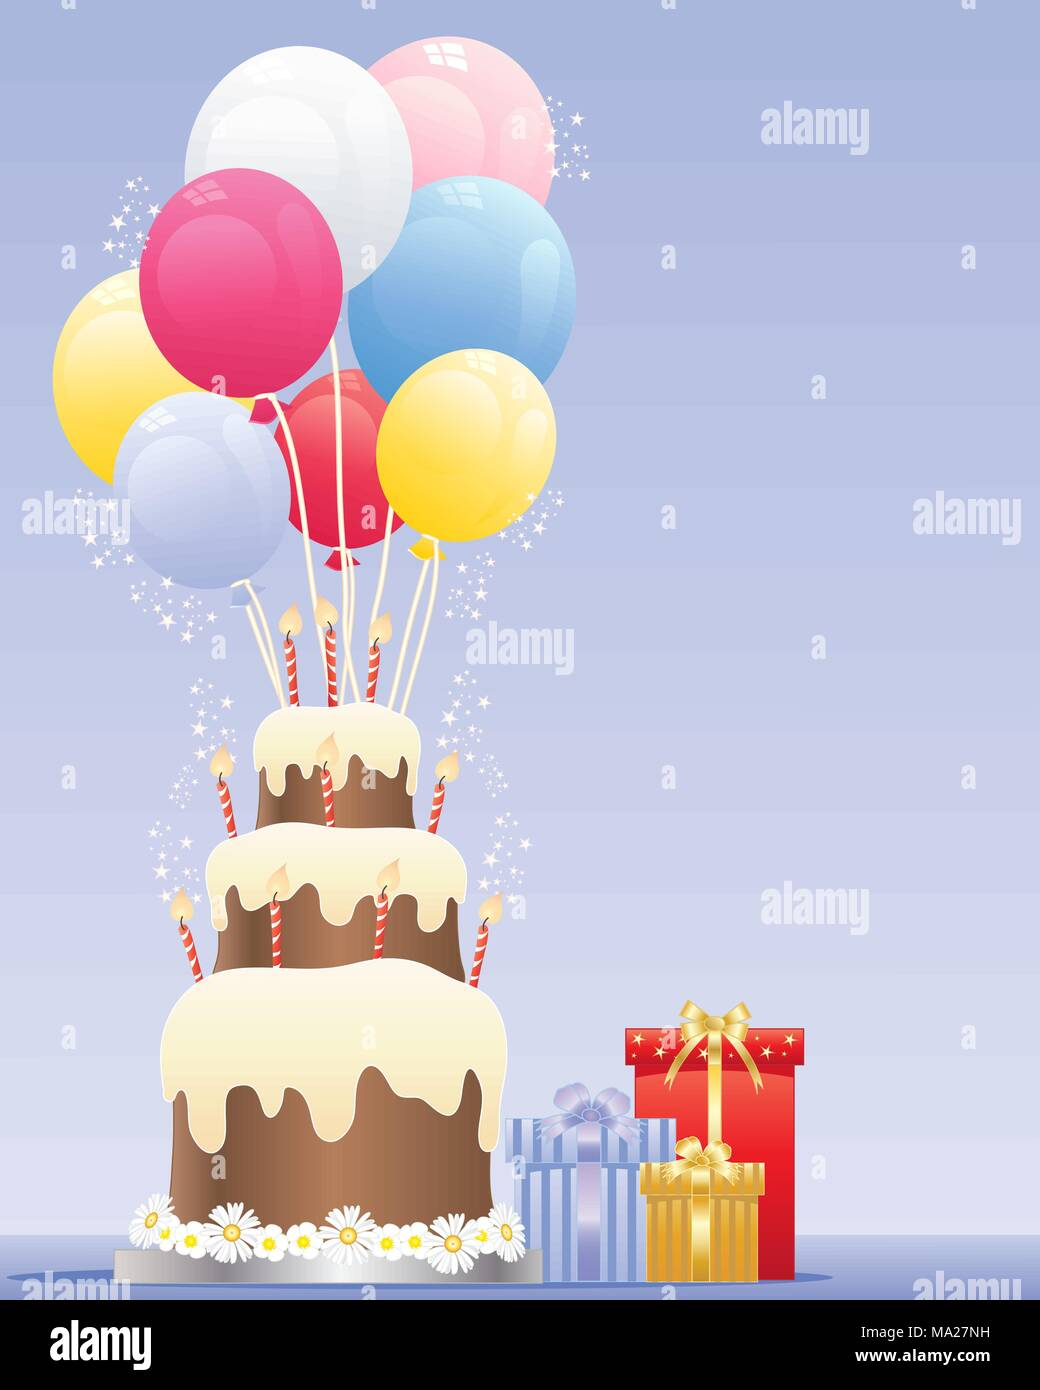 An Illustration Of A Birthday Cake With Three Tiers Striped Candles